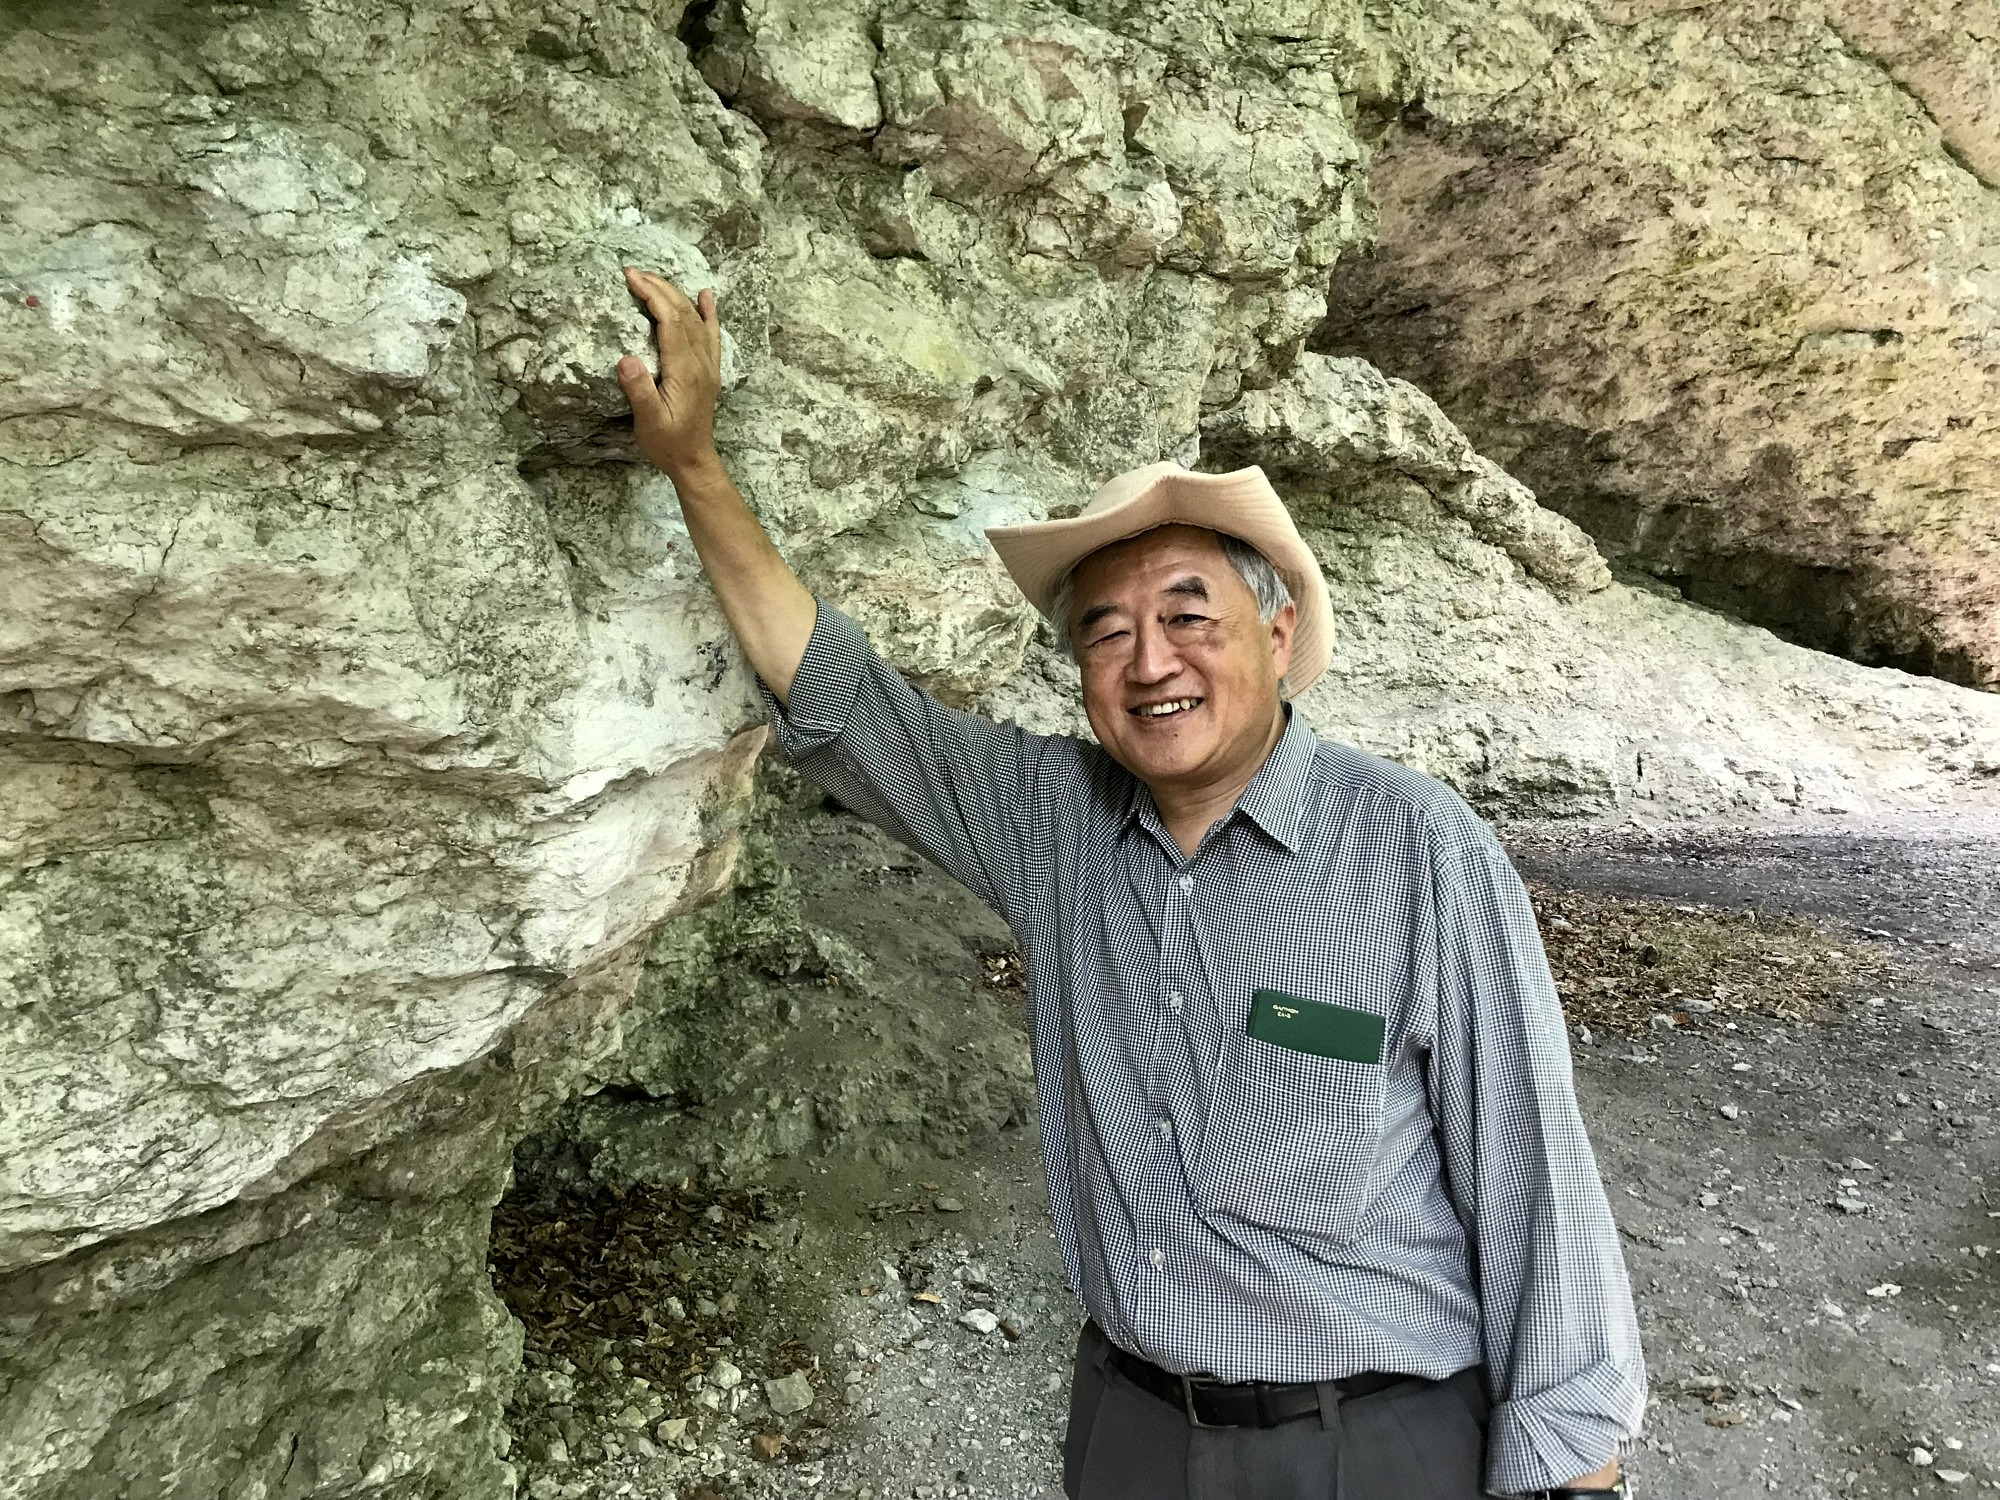 Prof. Isozaki at the Müllersfelsen, a Late Jurassic siliceous sponge - microbial reef mound in Franconia